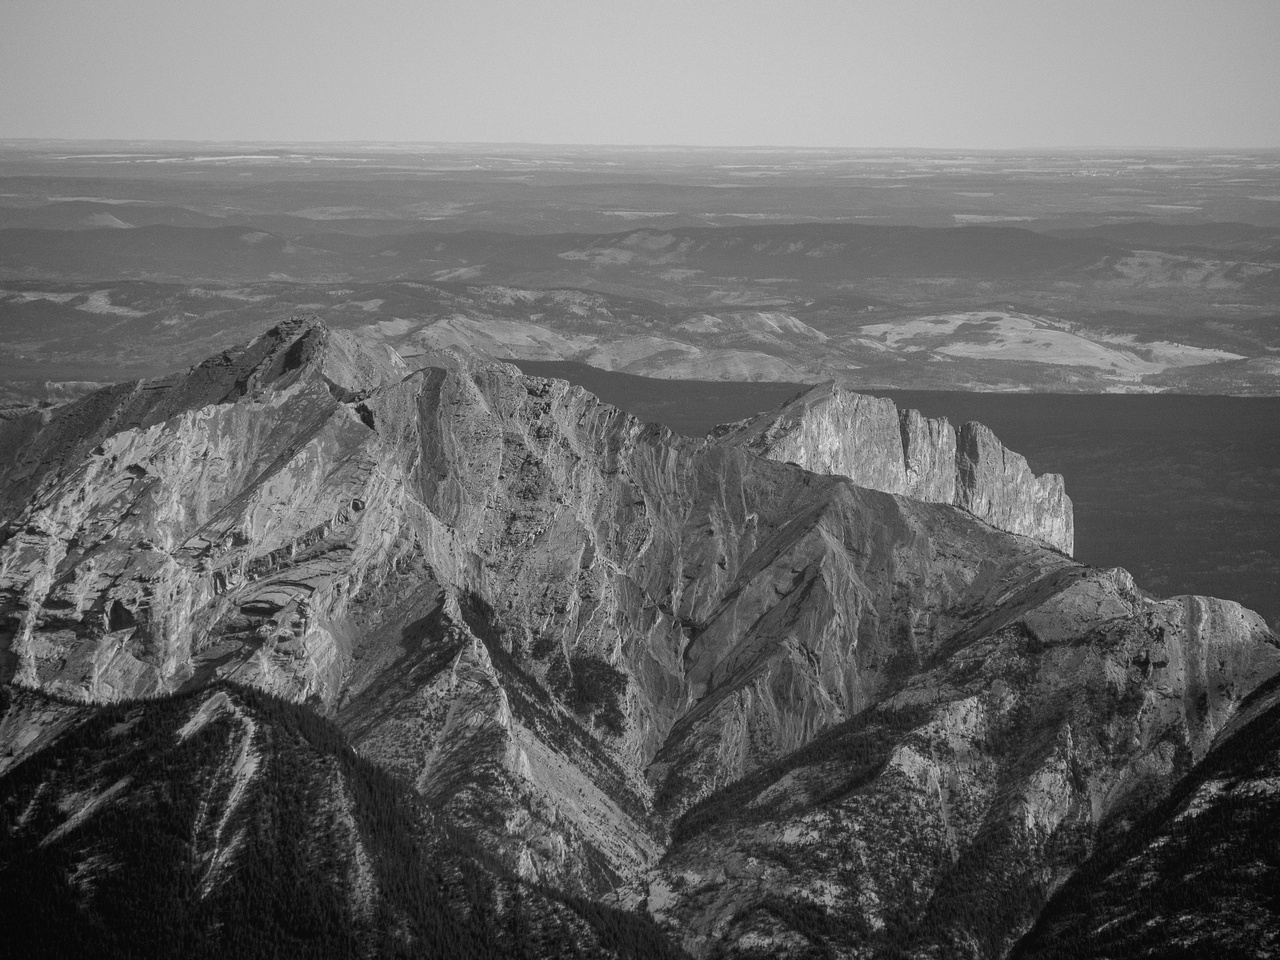 Looking over Goat Mountain to a tiny Yamnuska.